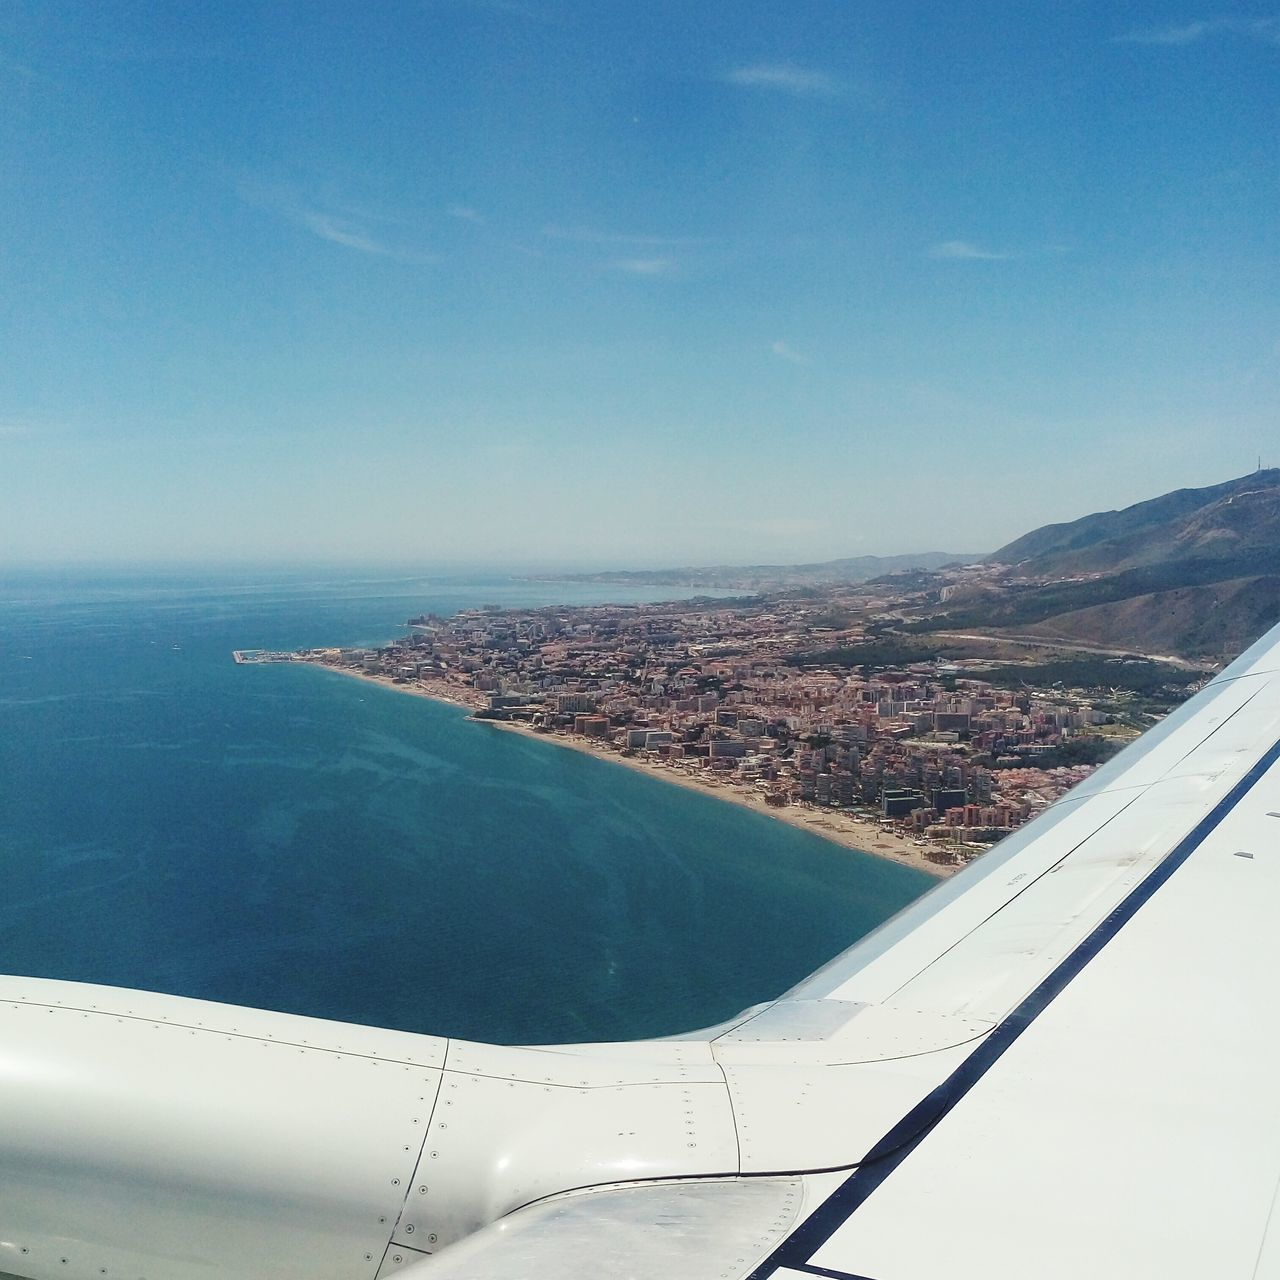 airplane, aerial view, transportation, journey, travel, landscape, mid-air, no people, scenics, beauty in nature, day, nature, sky, air vehicle, aircraft wing, mode of transport, flying, airplane wing, blue, outdoors, water, tranquil scene, mountain, tranquility, vehicle part, view into land, sea